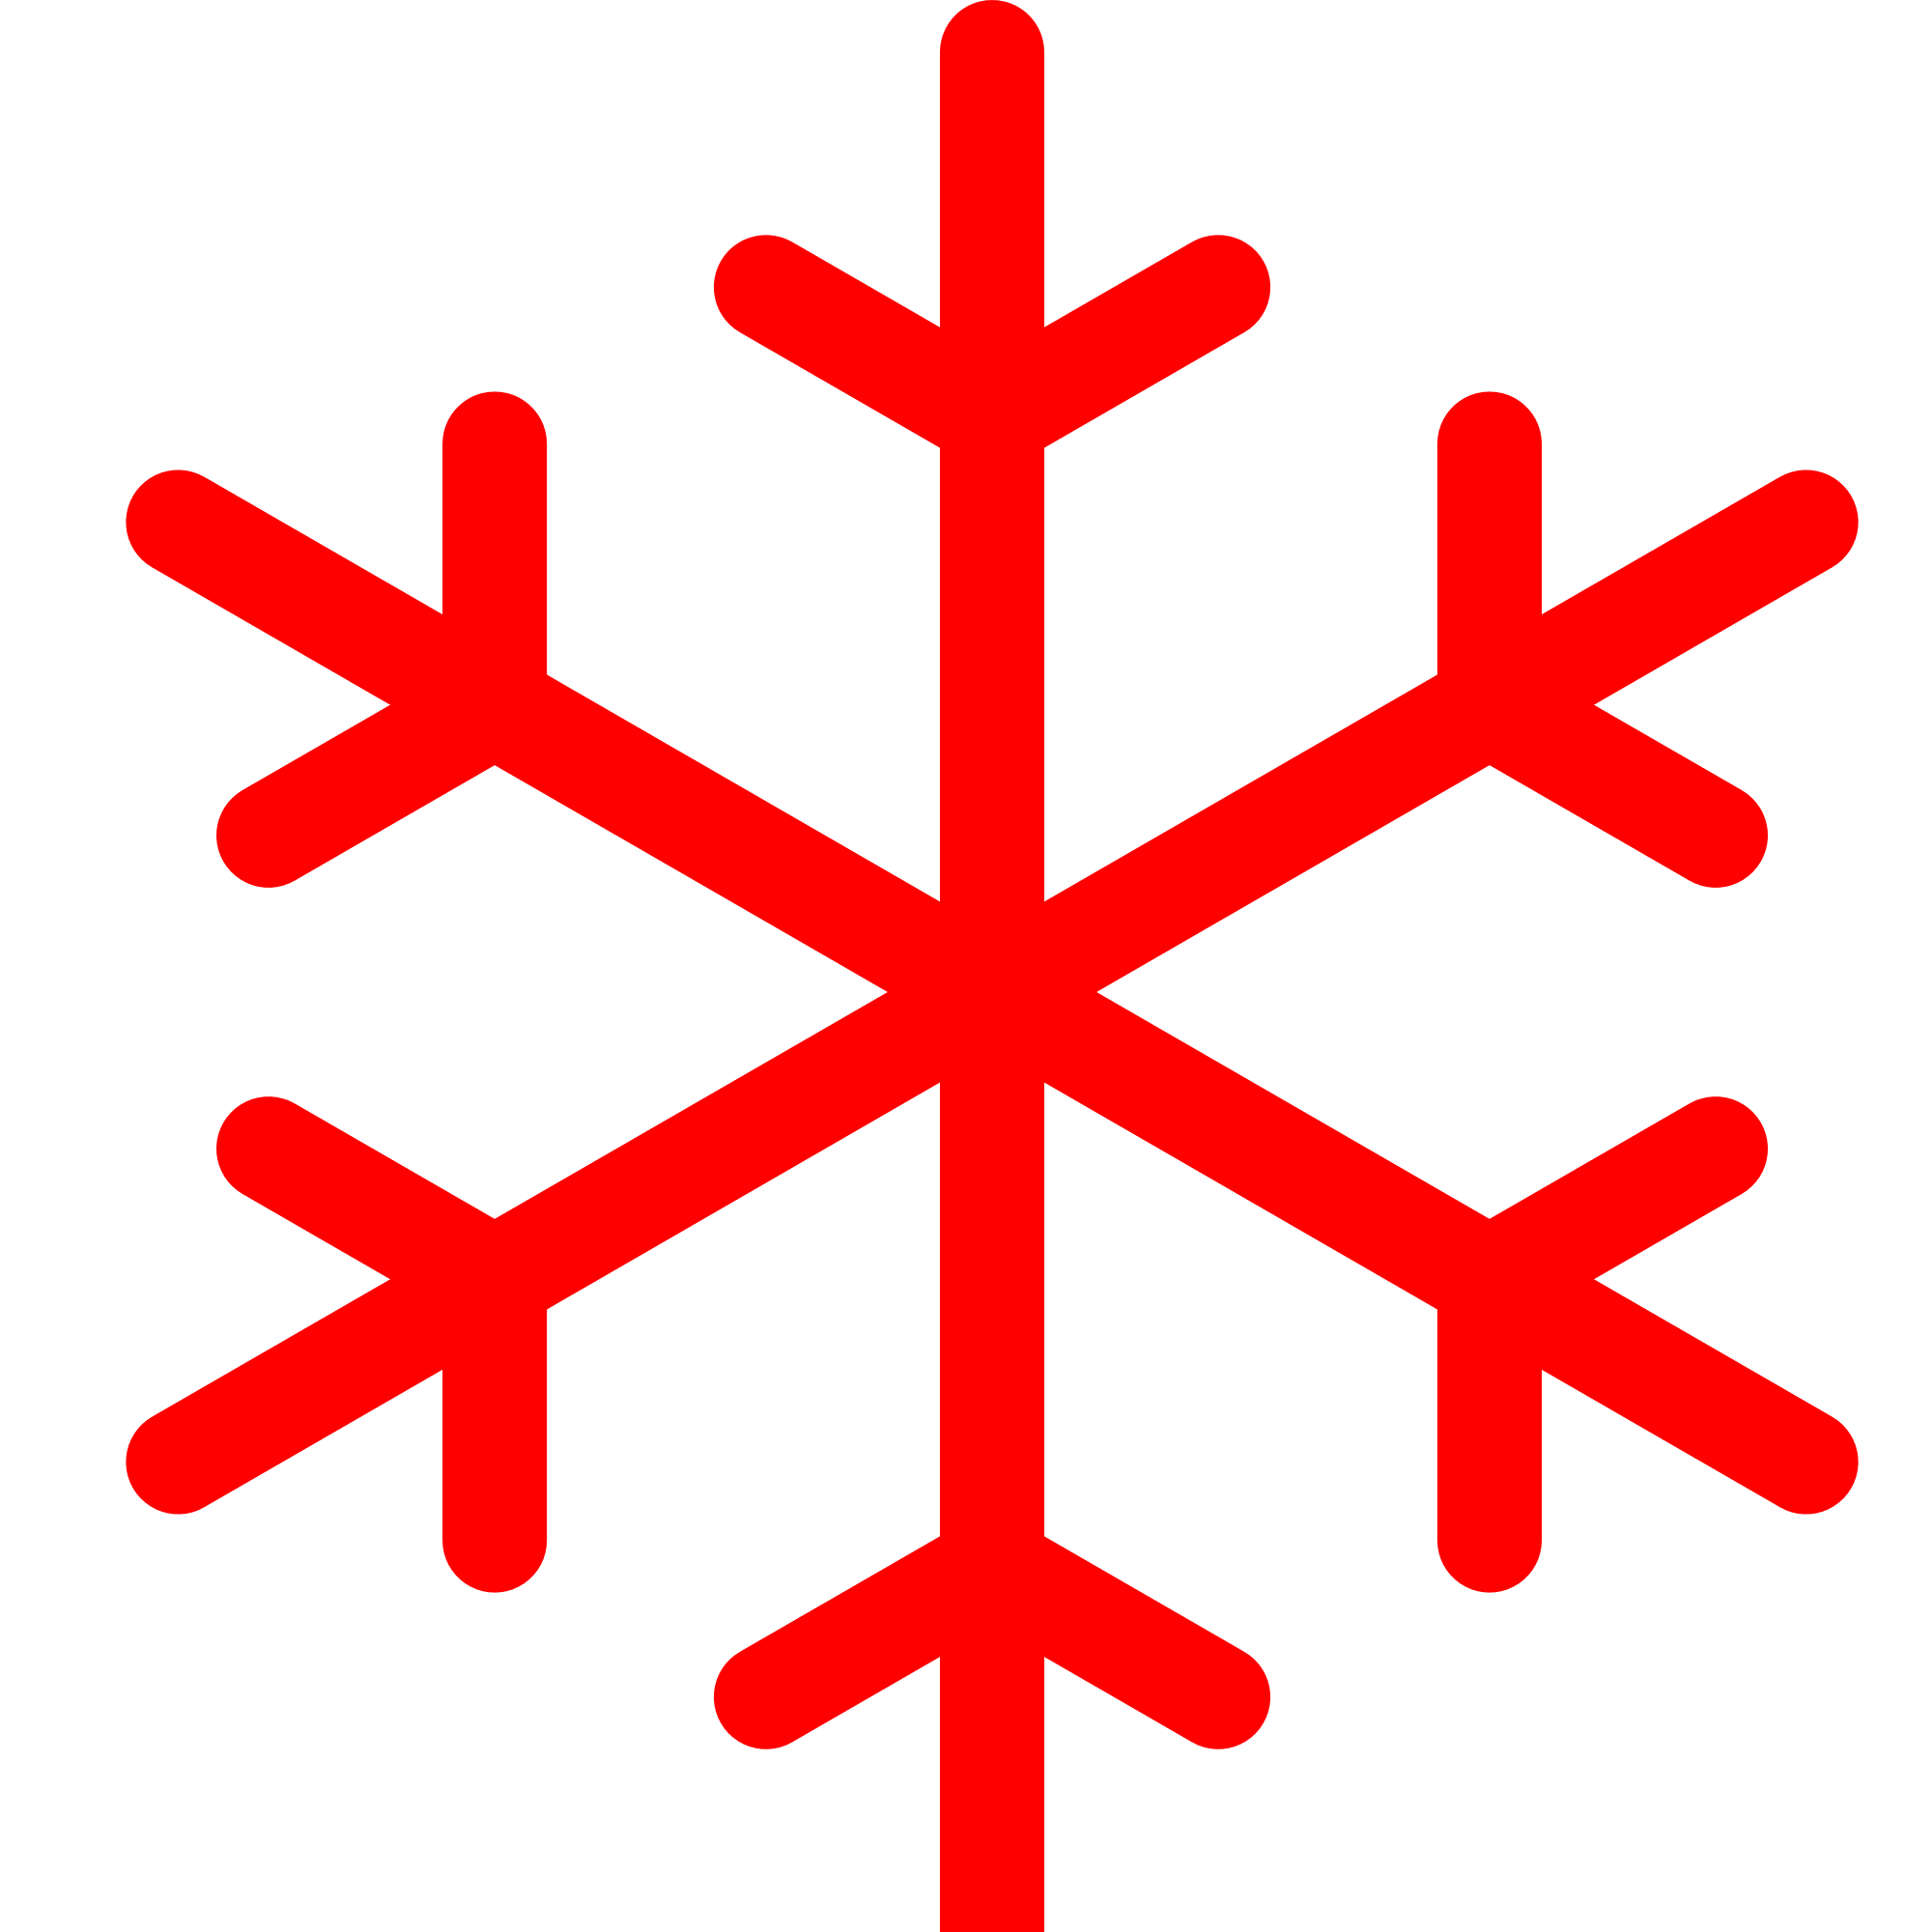 Red snowflake png. File svg animation wikimedia